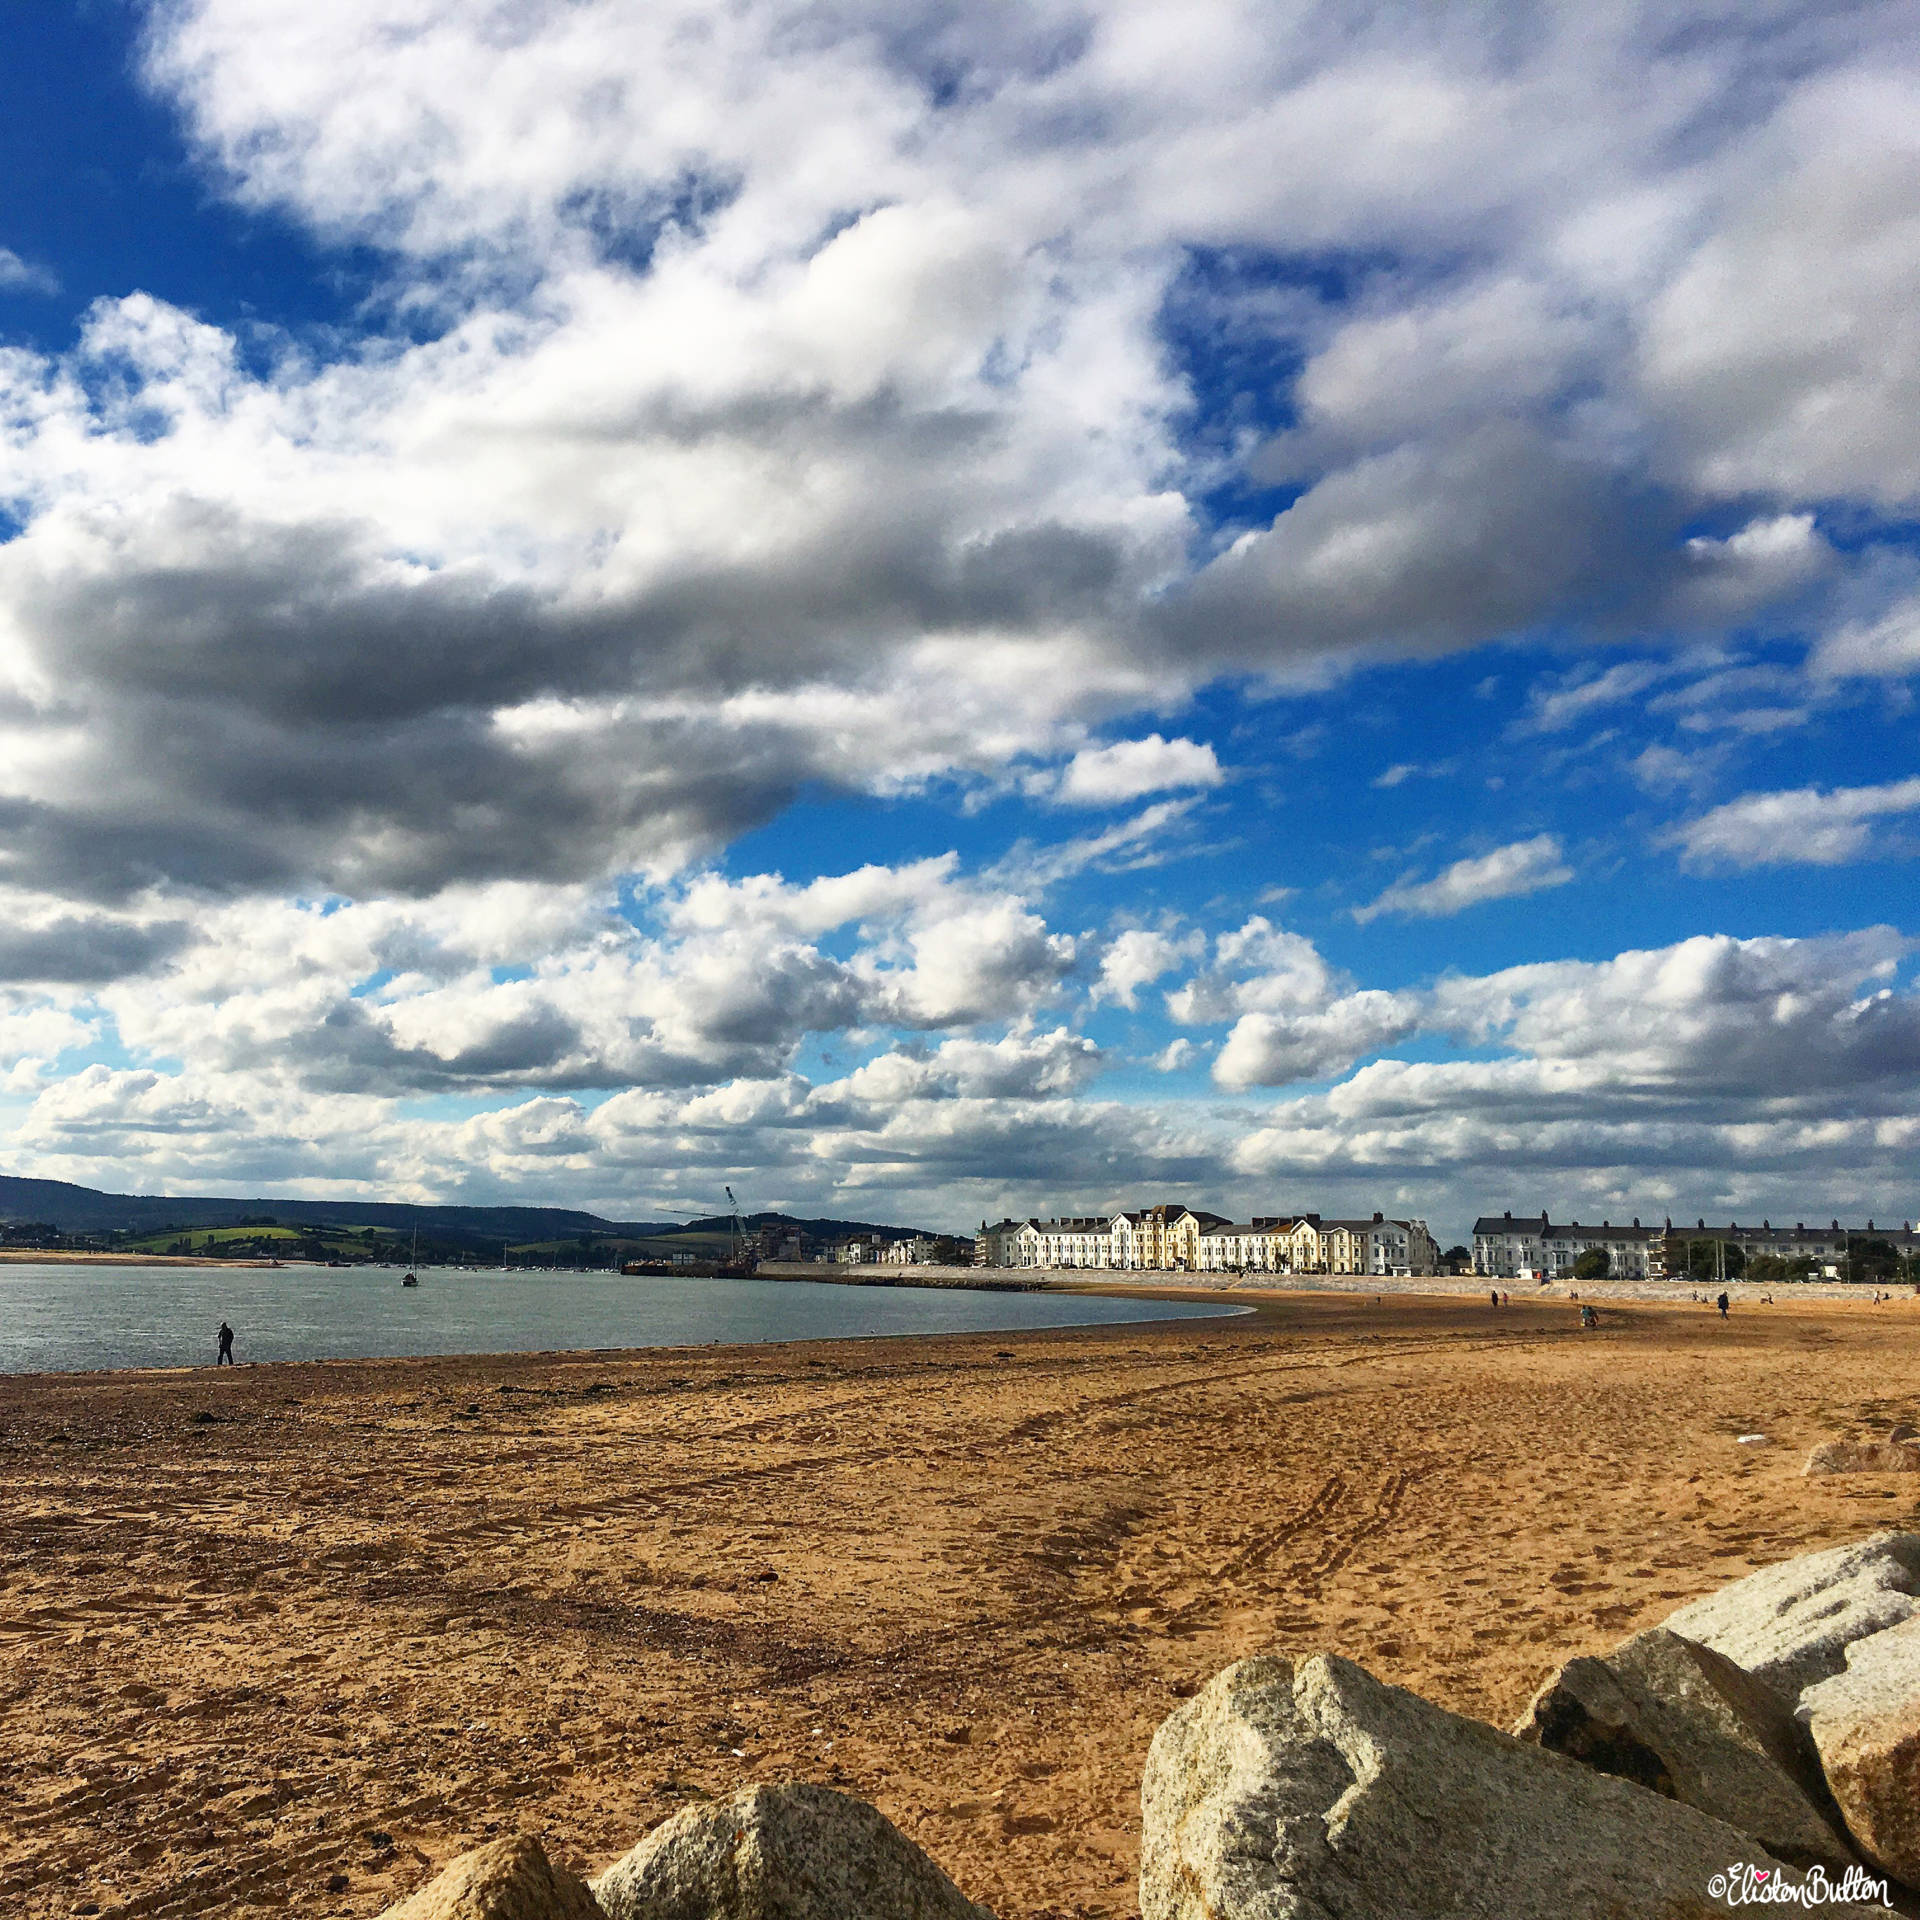 Exmouth Beach and Seafront, Exmouth, UK - Around Here…September 2016 at www.elistonbutton.com - Eliston Button - That Crafty Kid – Art, Design, Craft & Adventure.